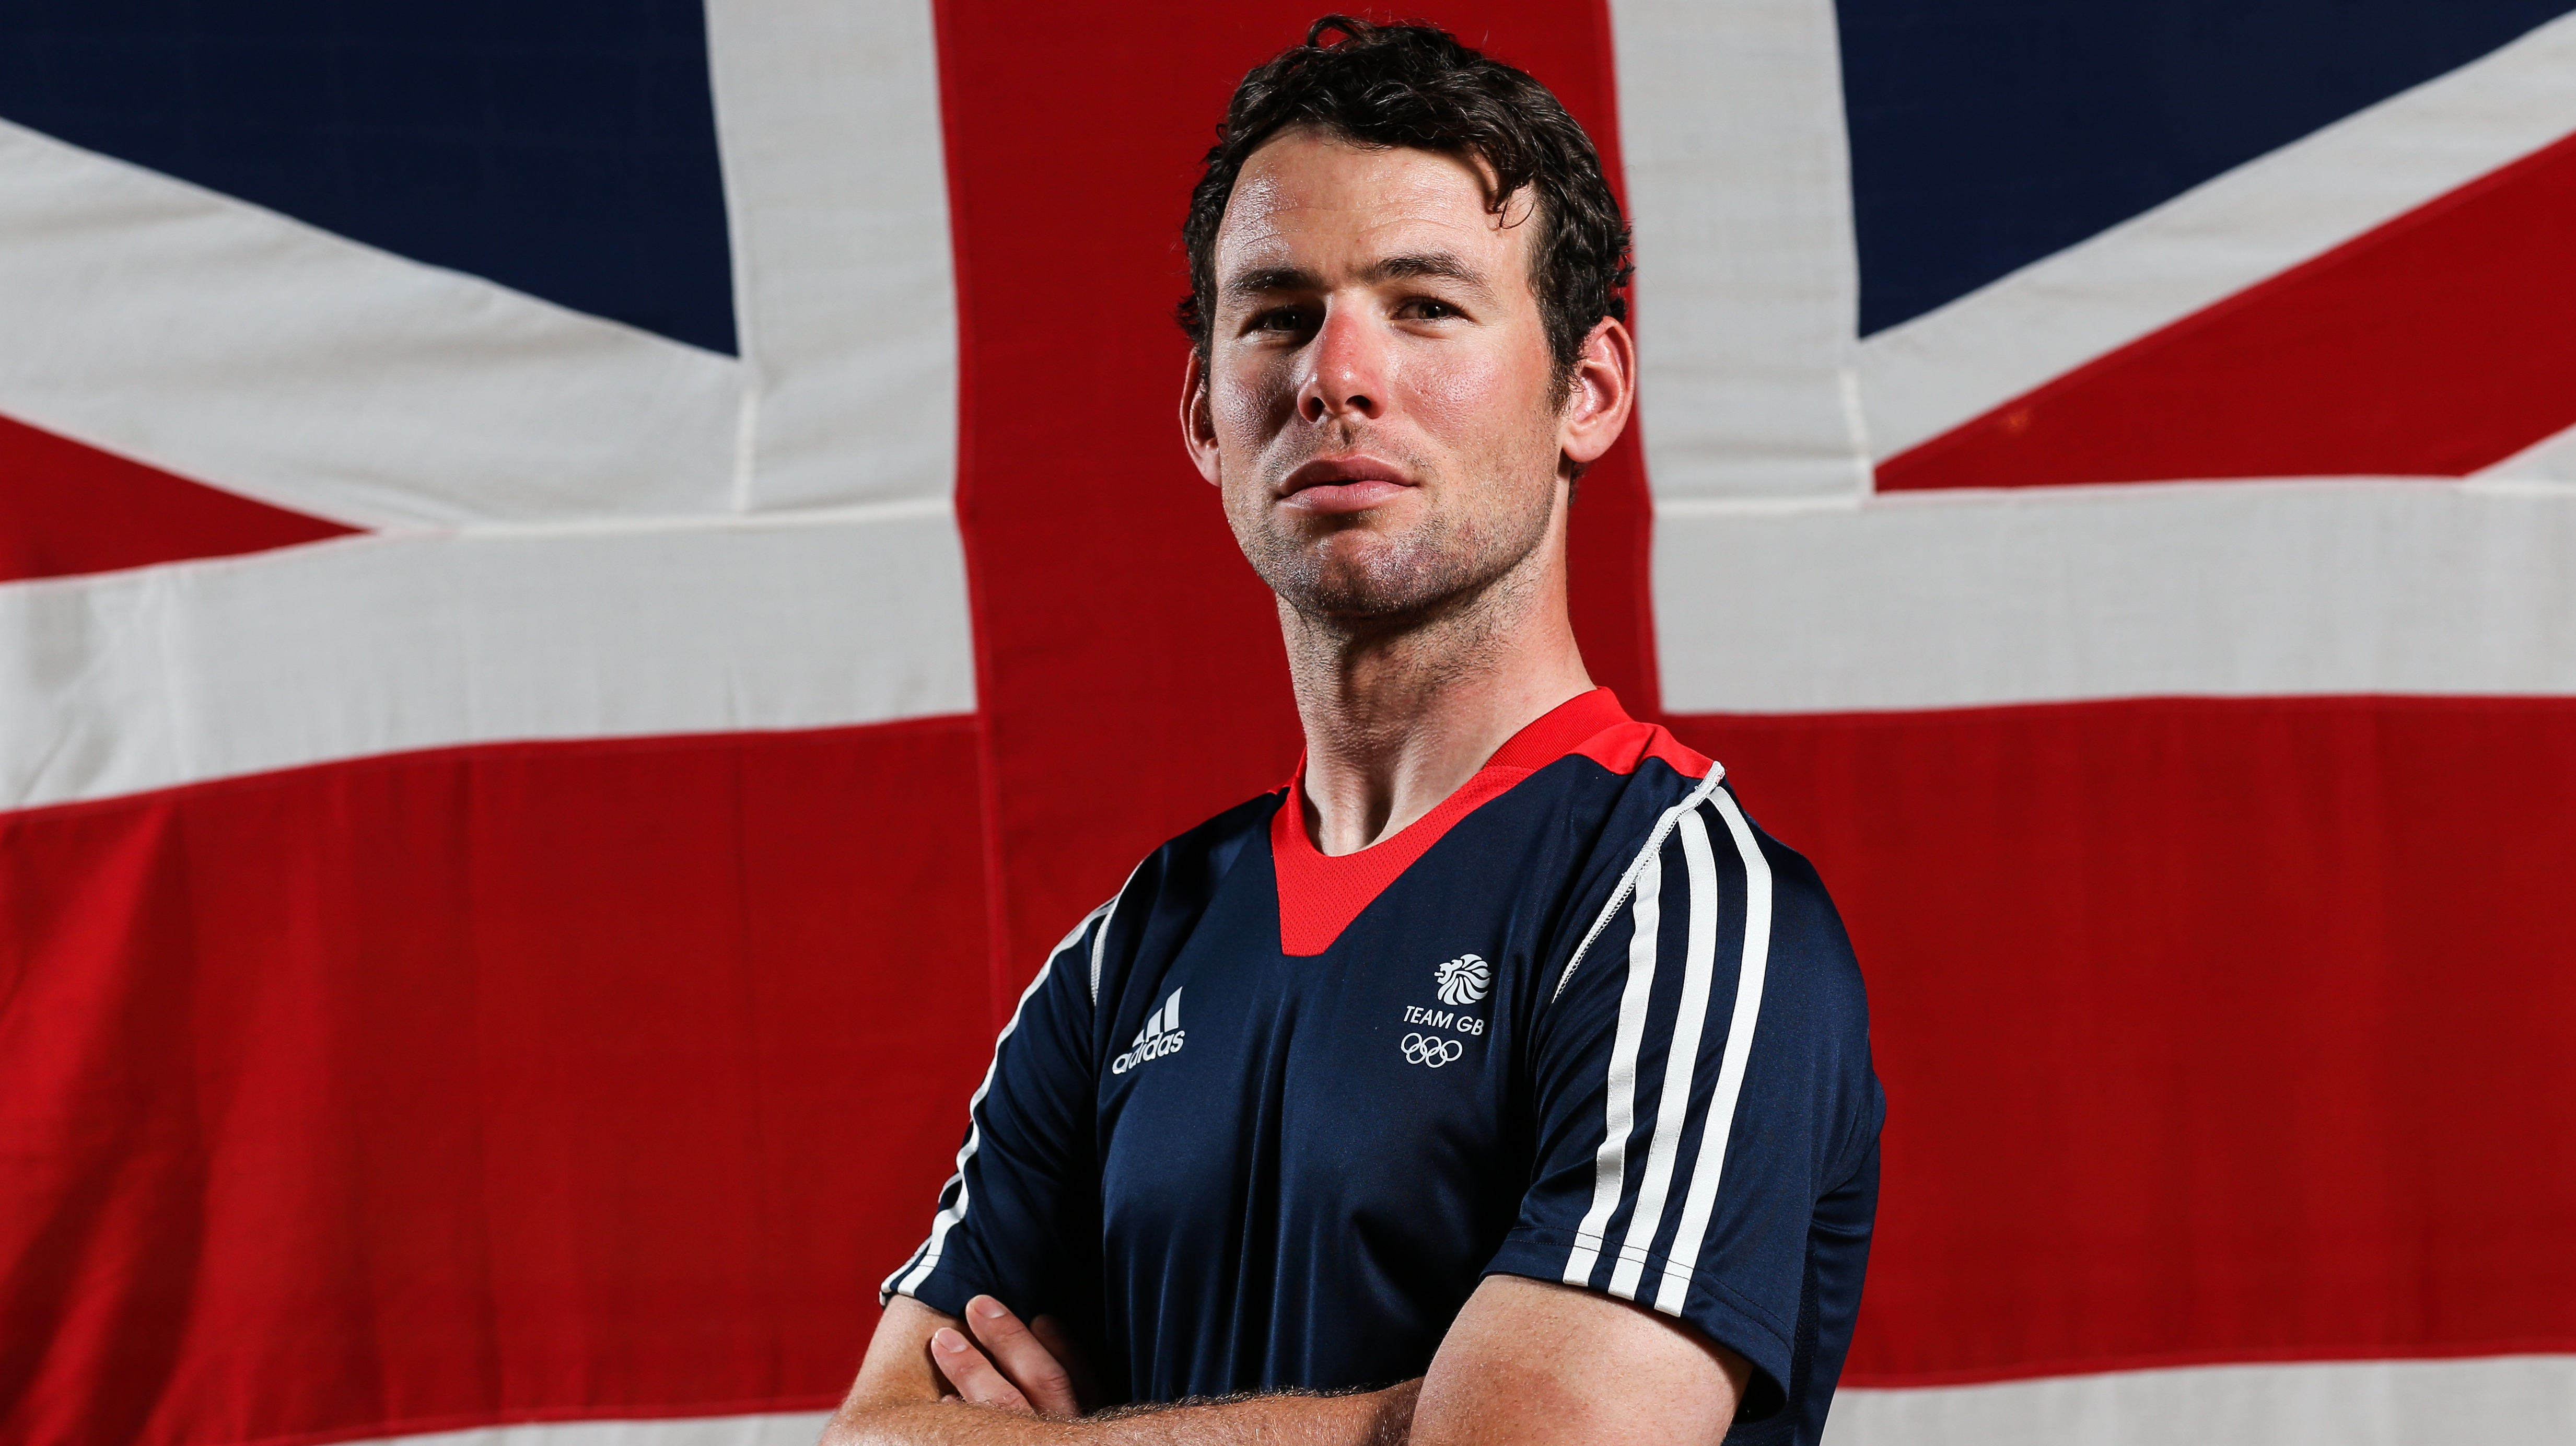 Mark Cavendish: Five key moments in an illustrious career | ITV News